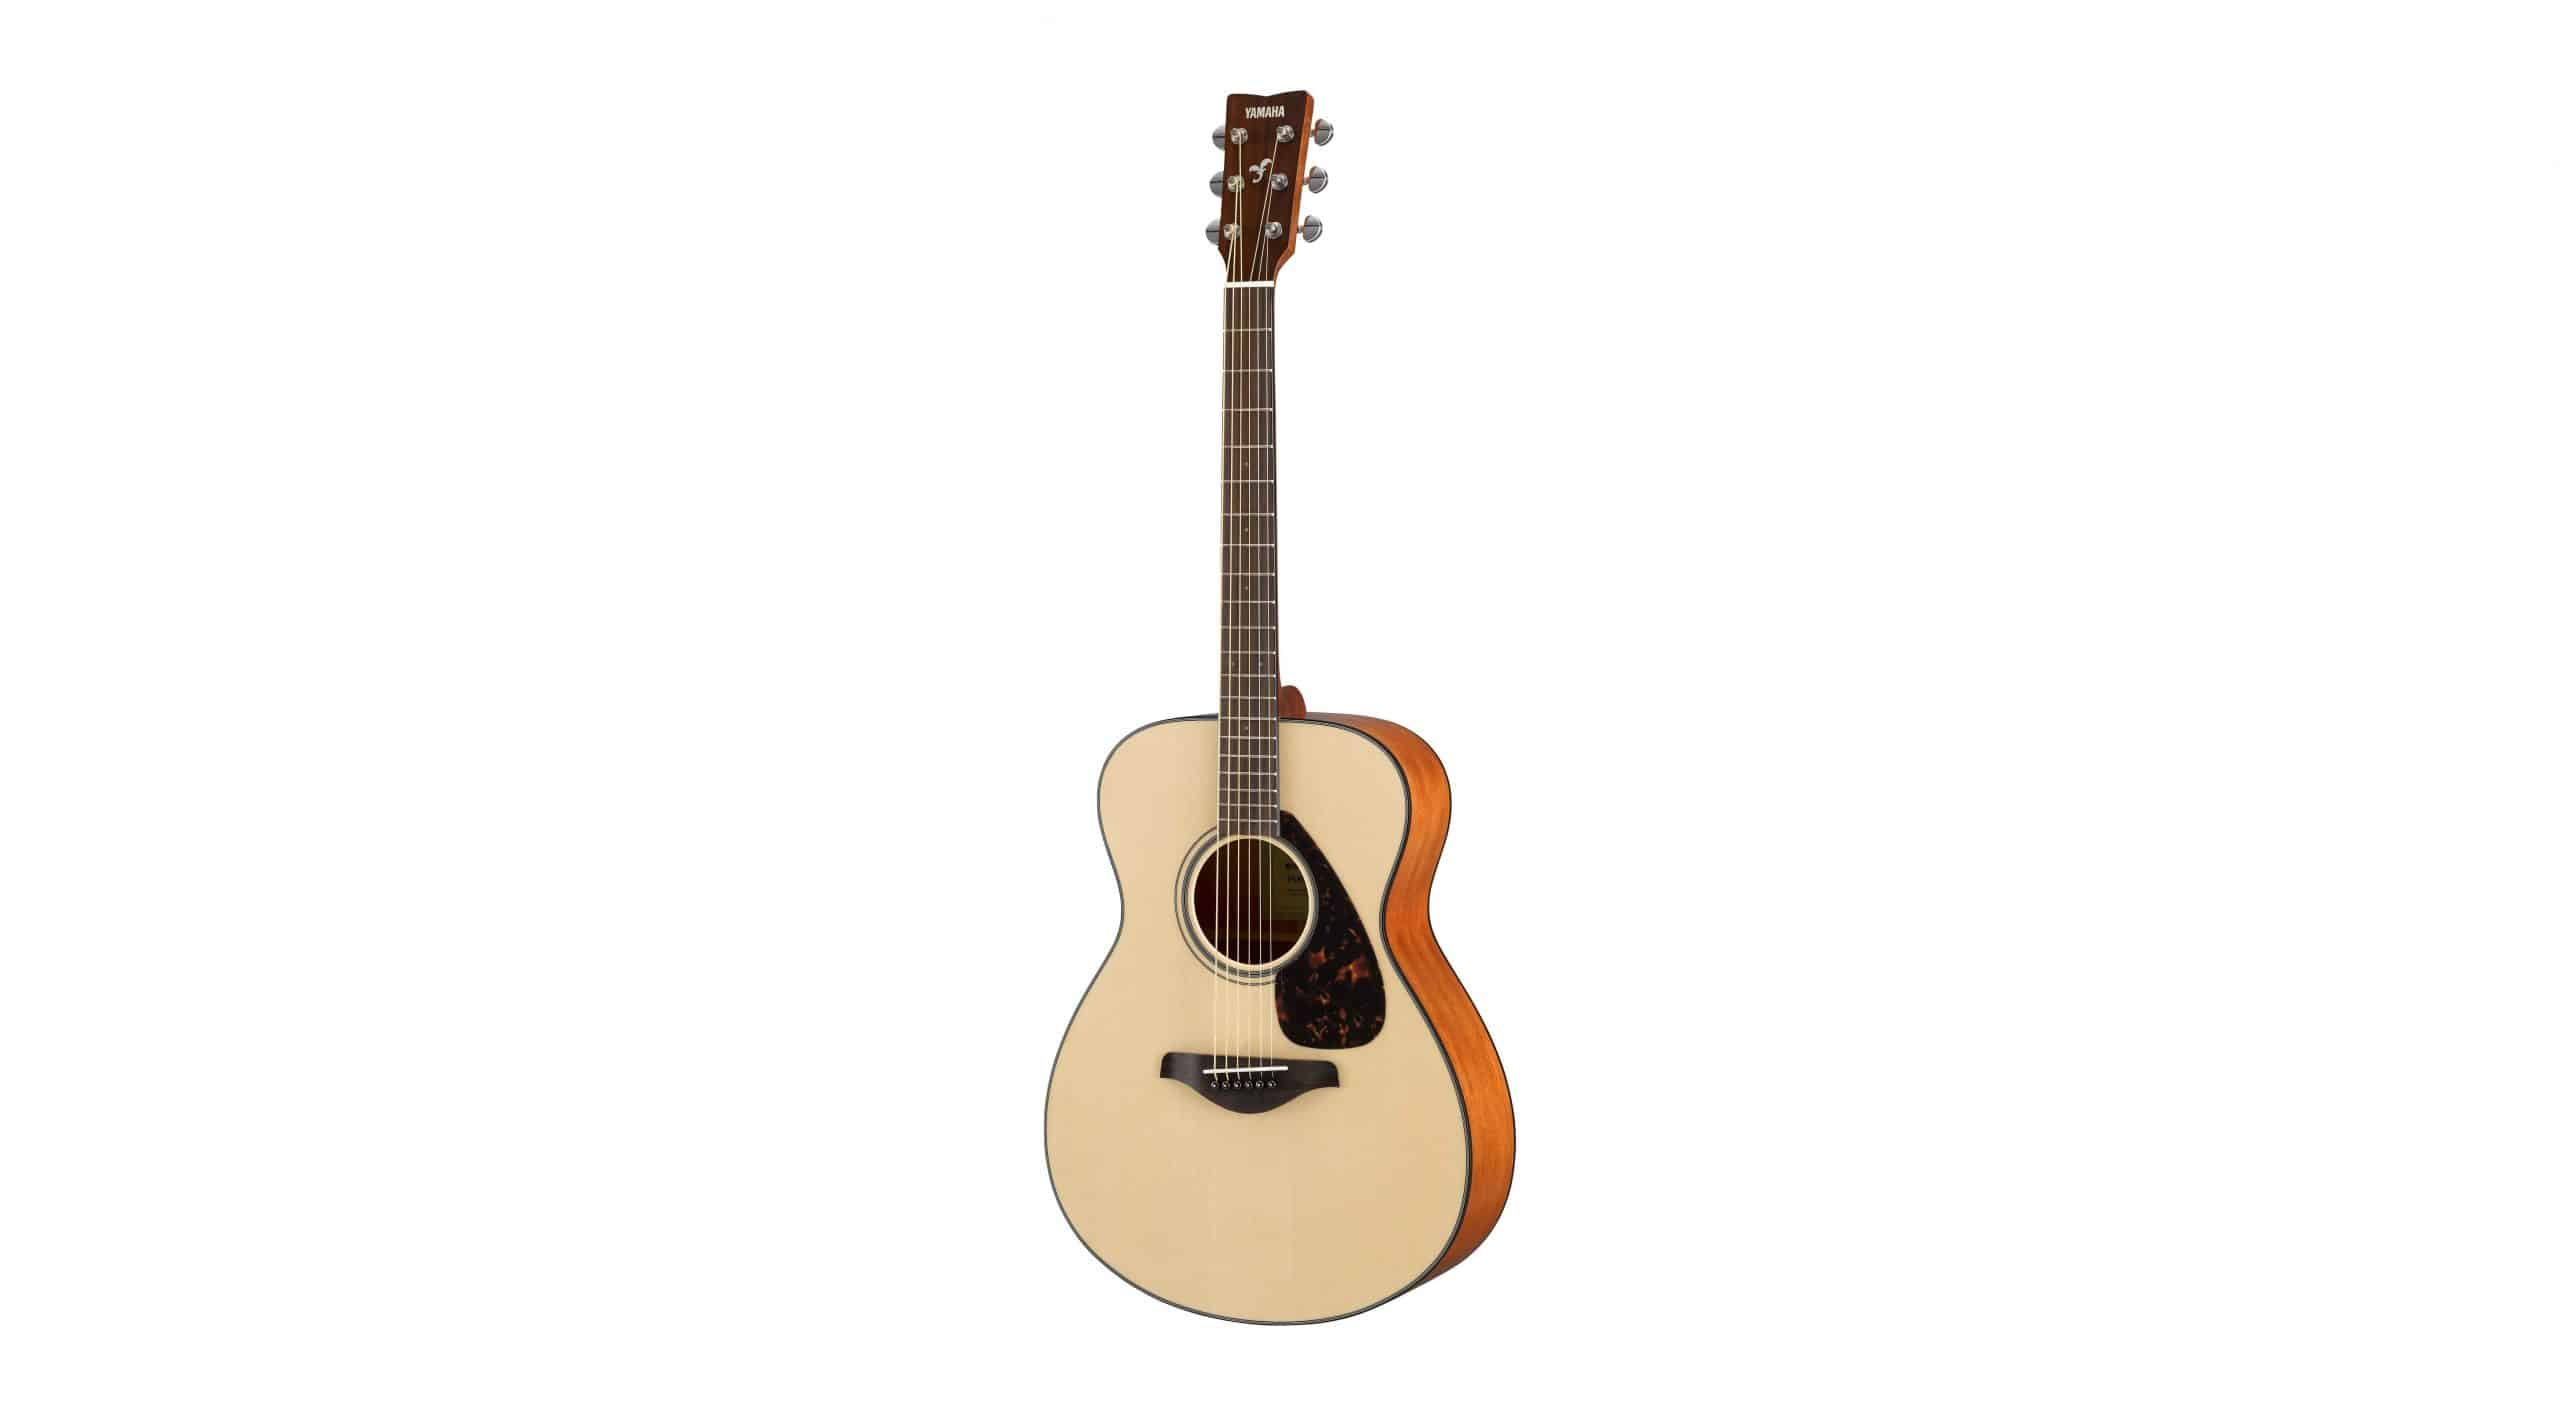 Yamaha FS800 Acoustic Guitar Review